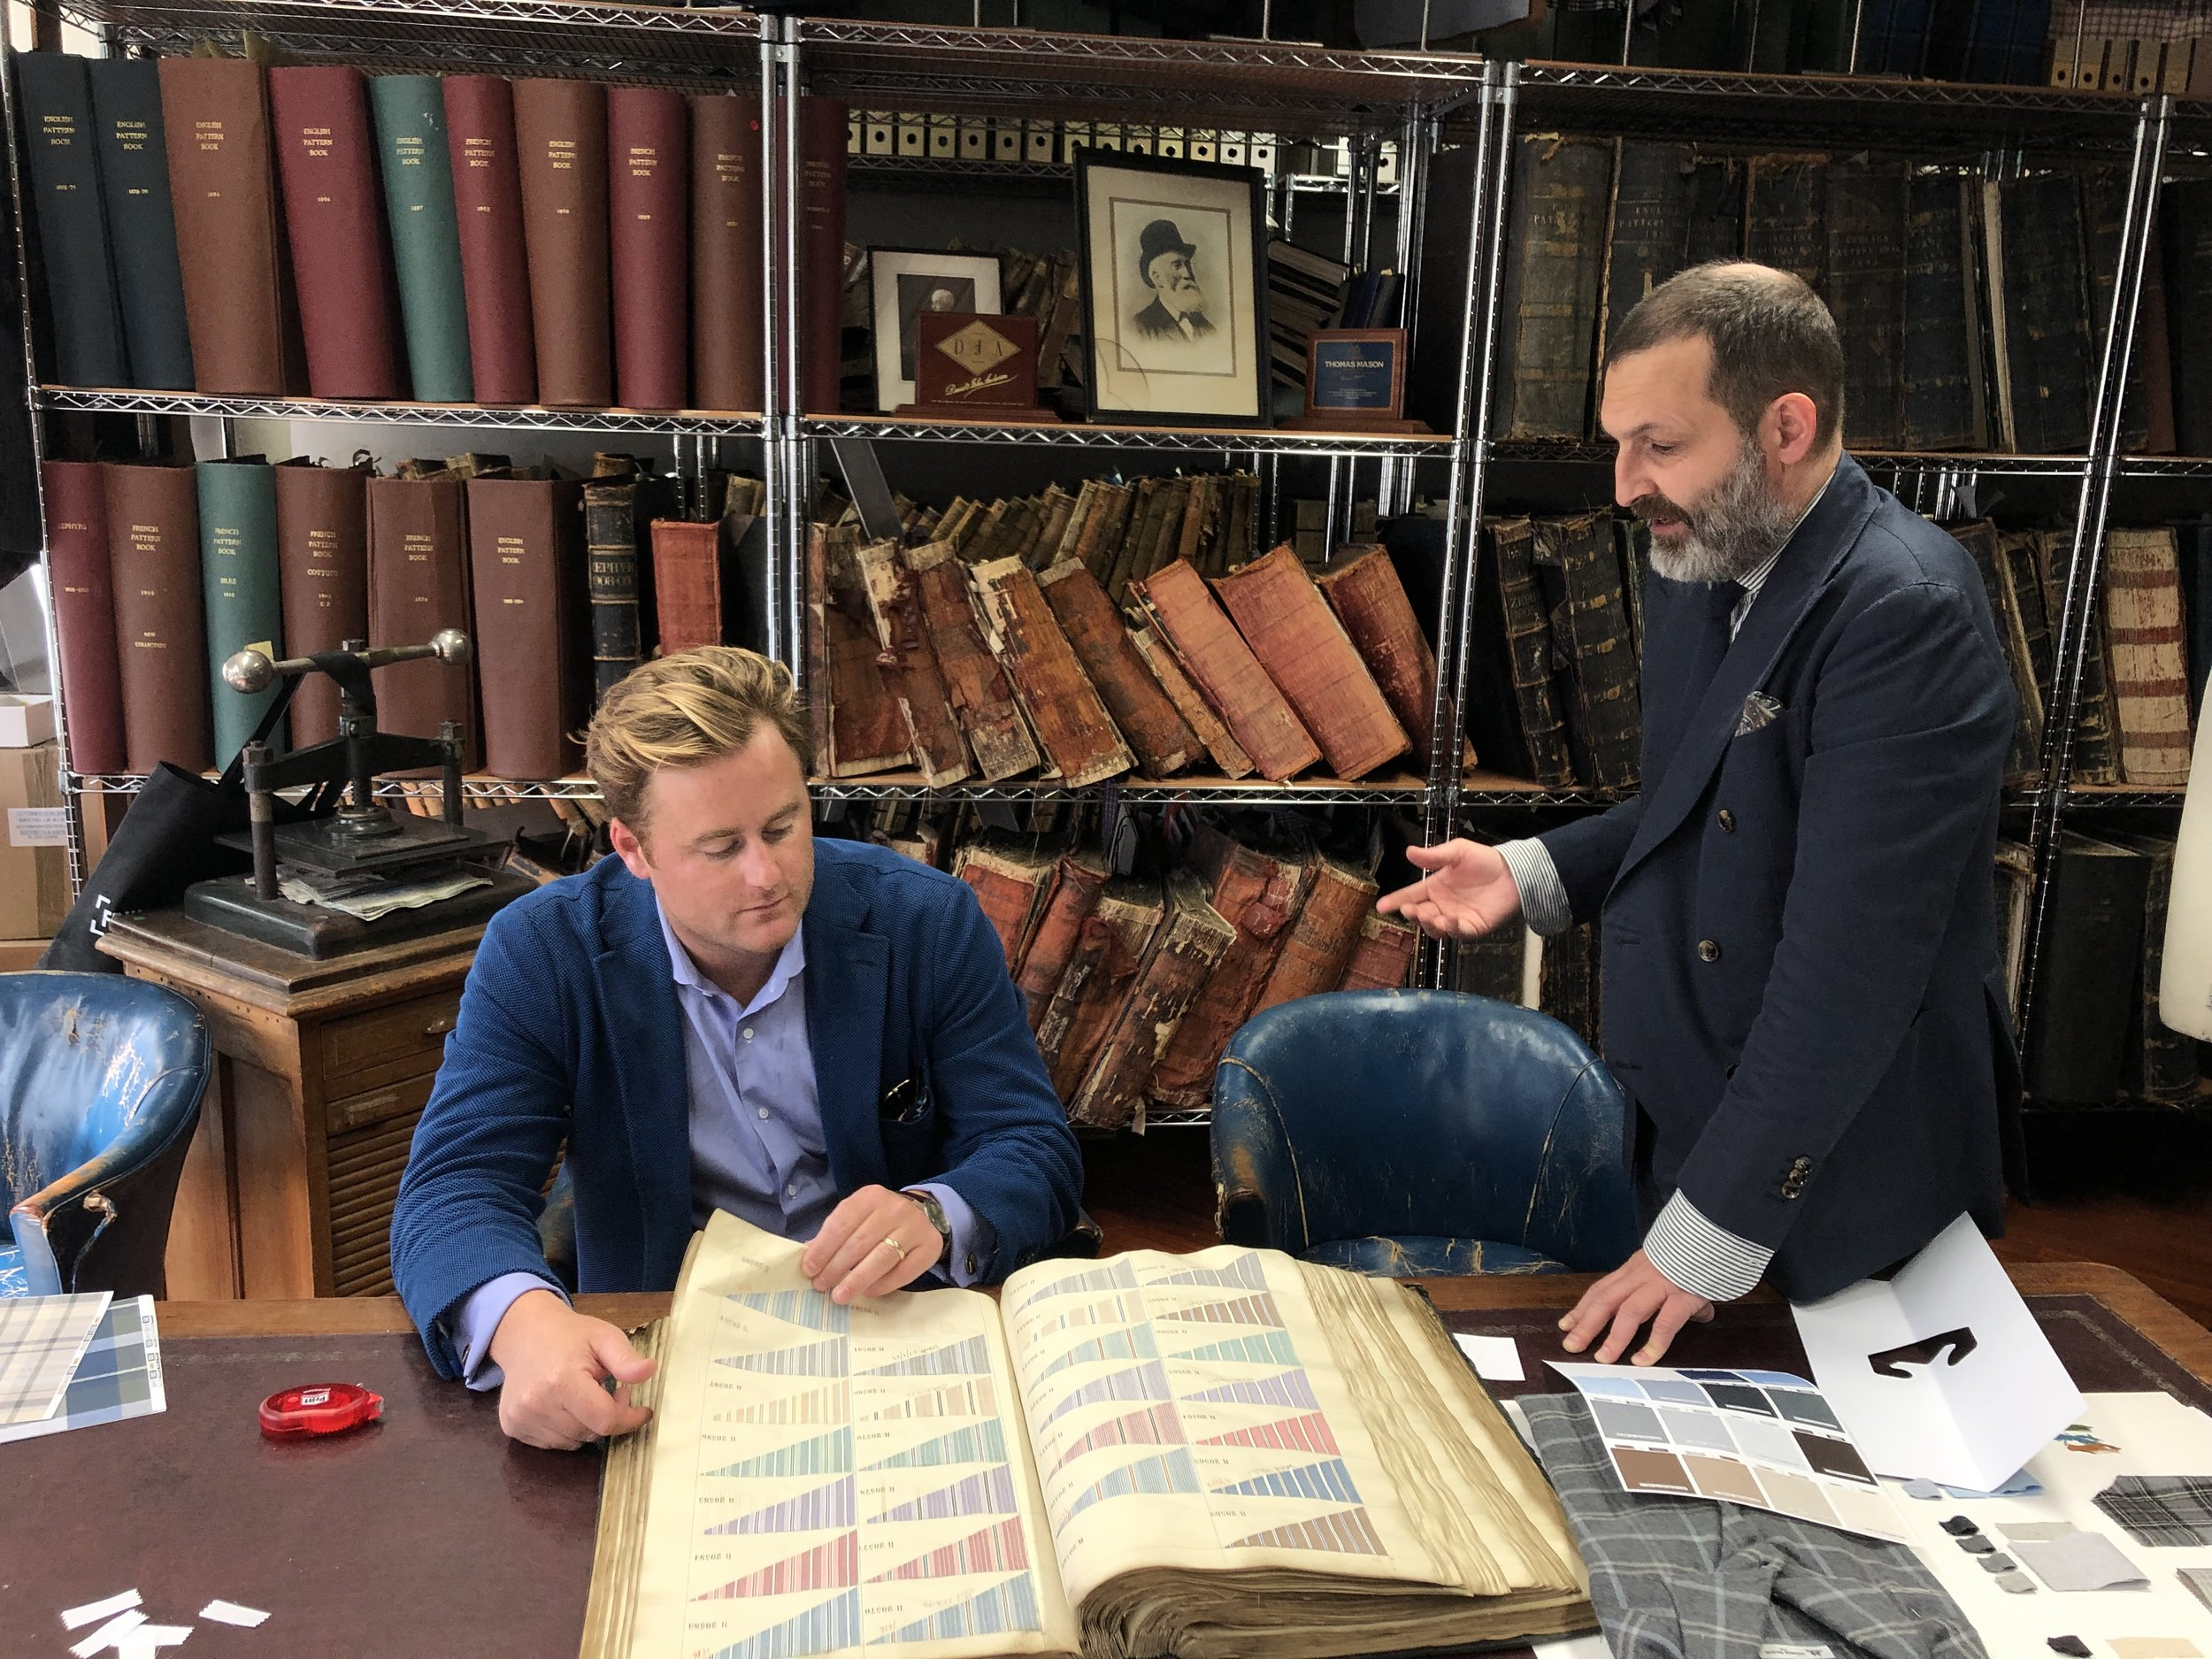 McGregor Madden and Enrico De Pieri in the vault. These fabric collections can be over 150 years old. It's nice to see that while there has been massive innovation in the way cloth is made - a lot of the styles that were popular then are still popular now.